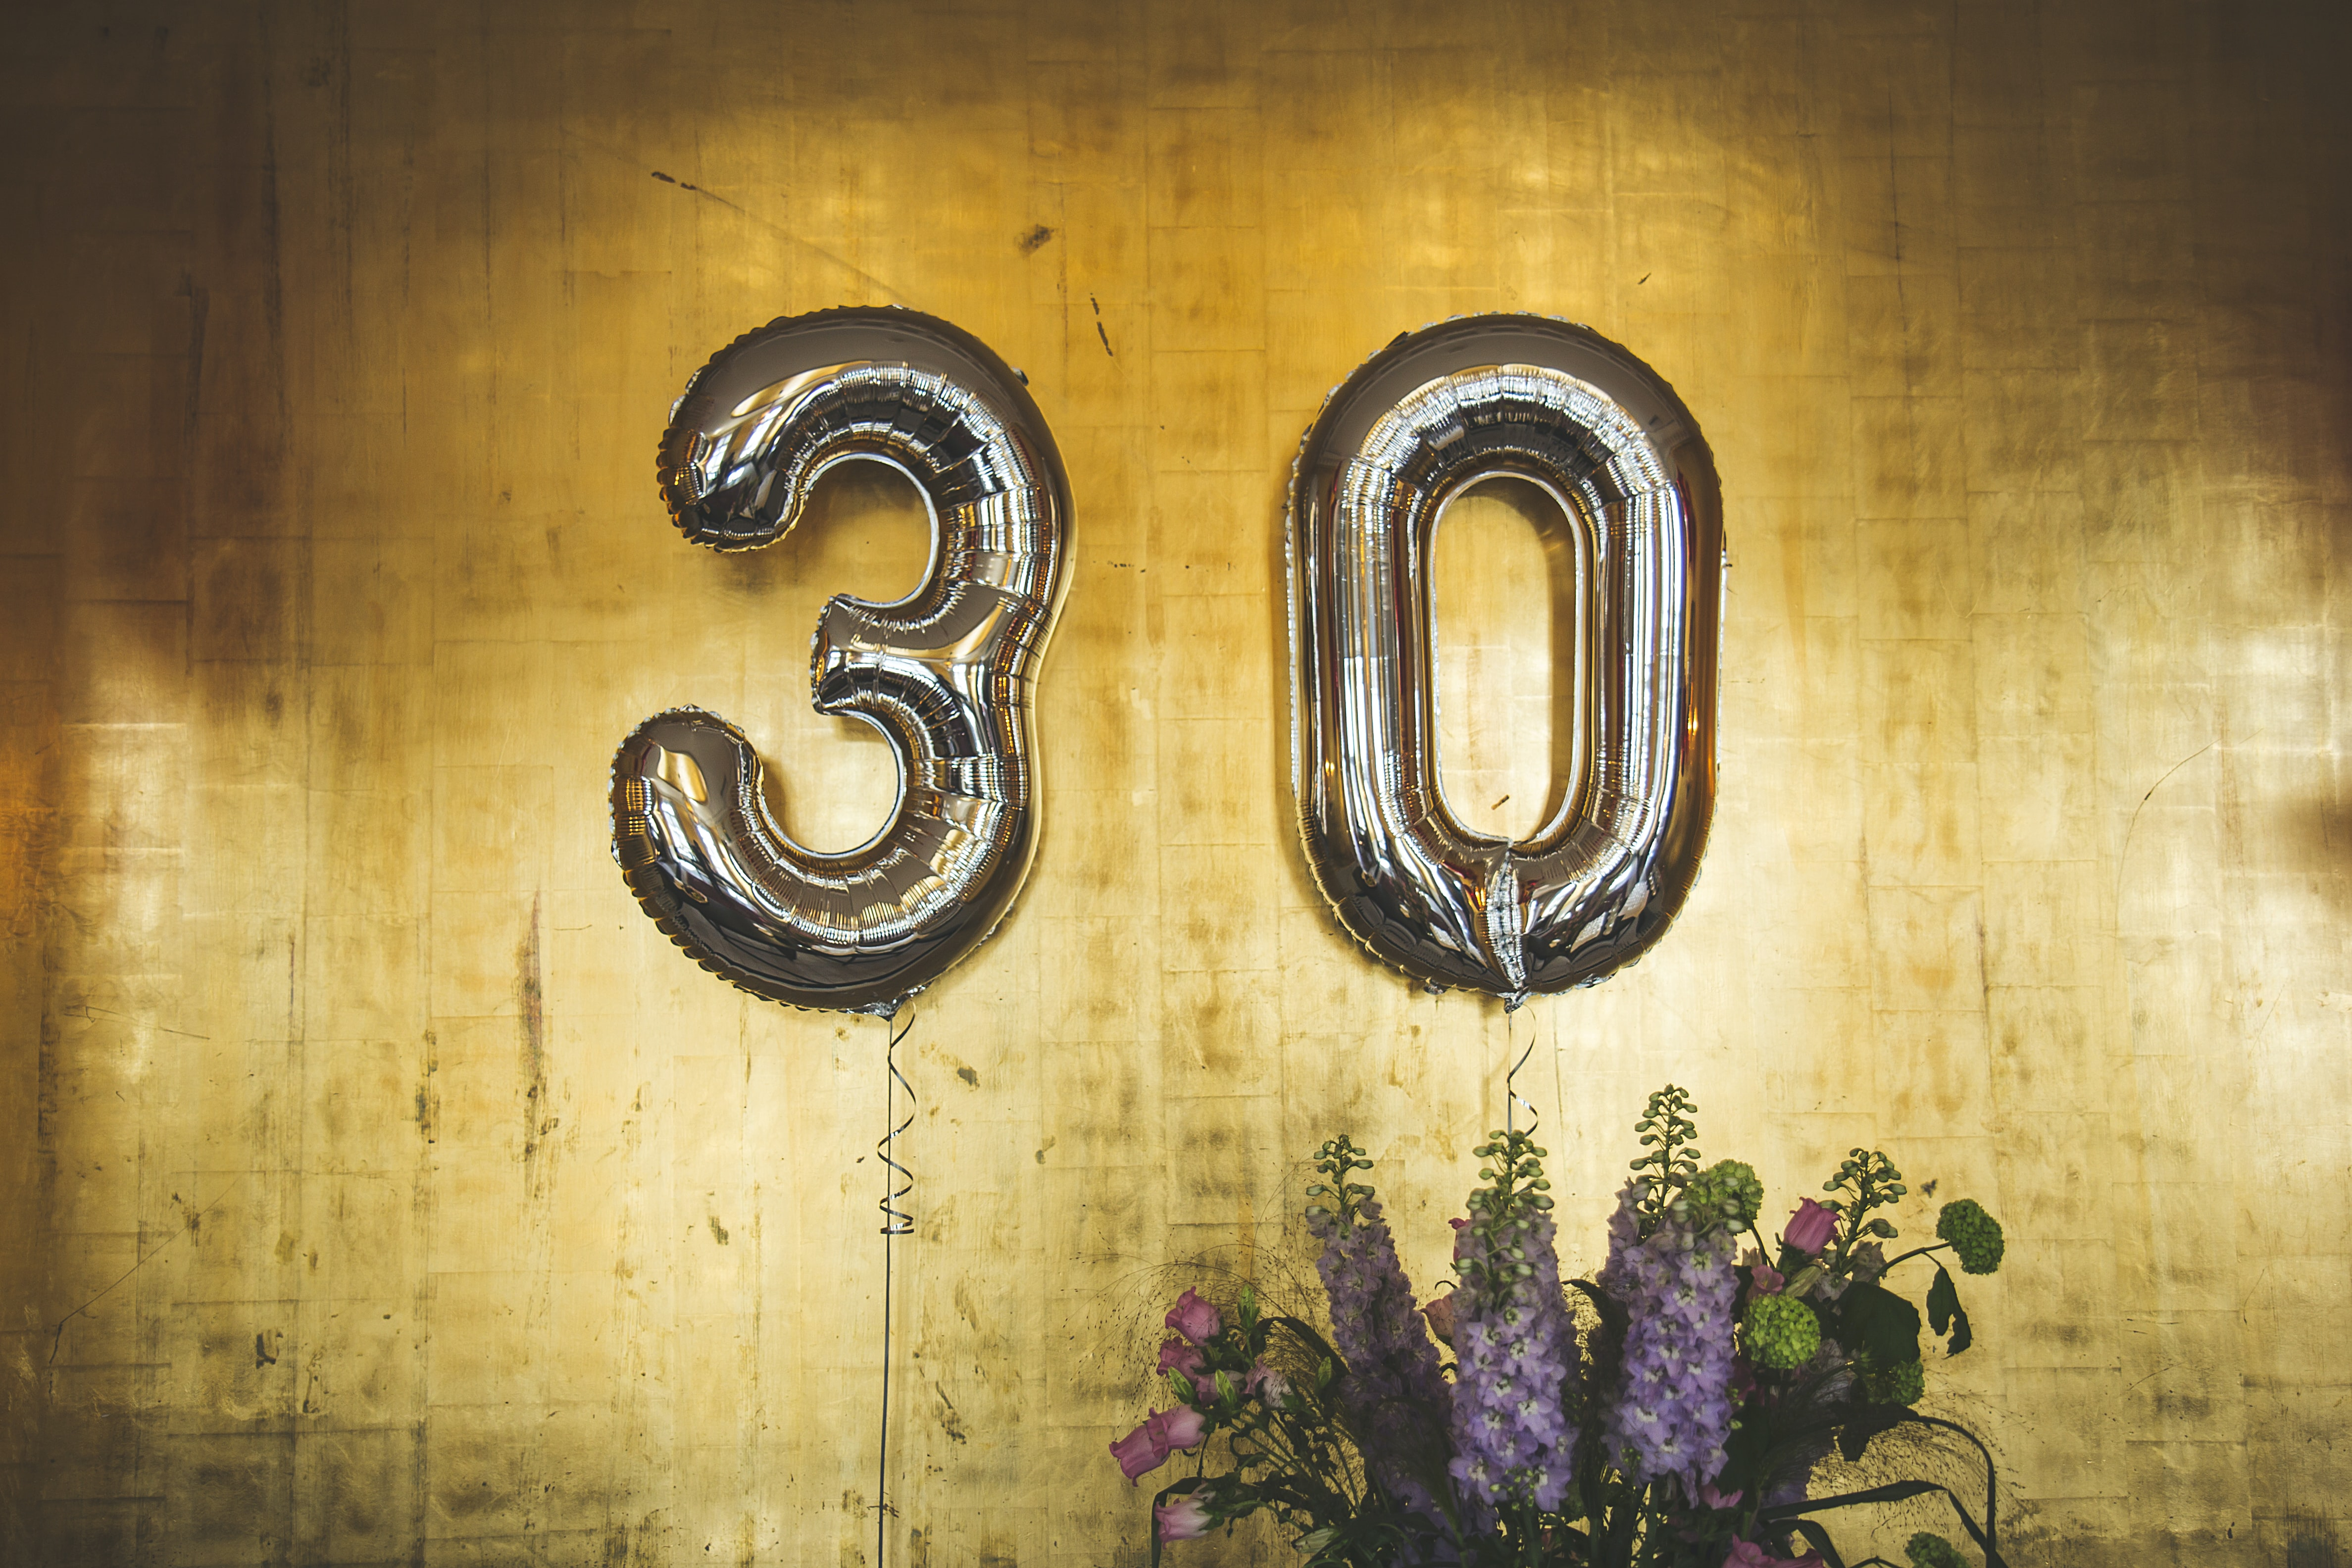 Numbered gold balloons that spell out the number 30 against a wooden backdrop and purple flowers.